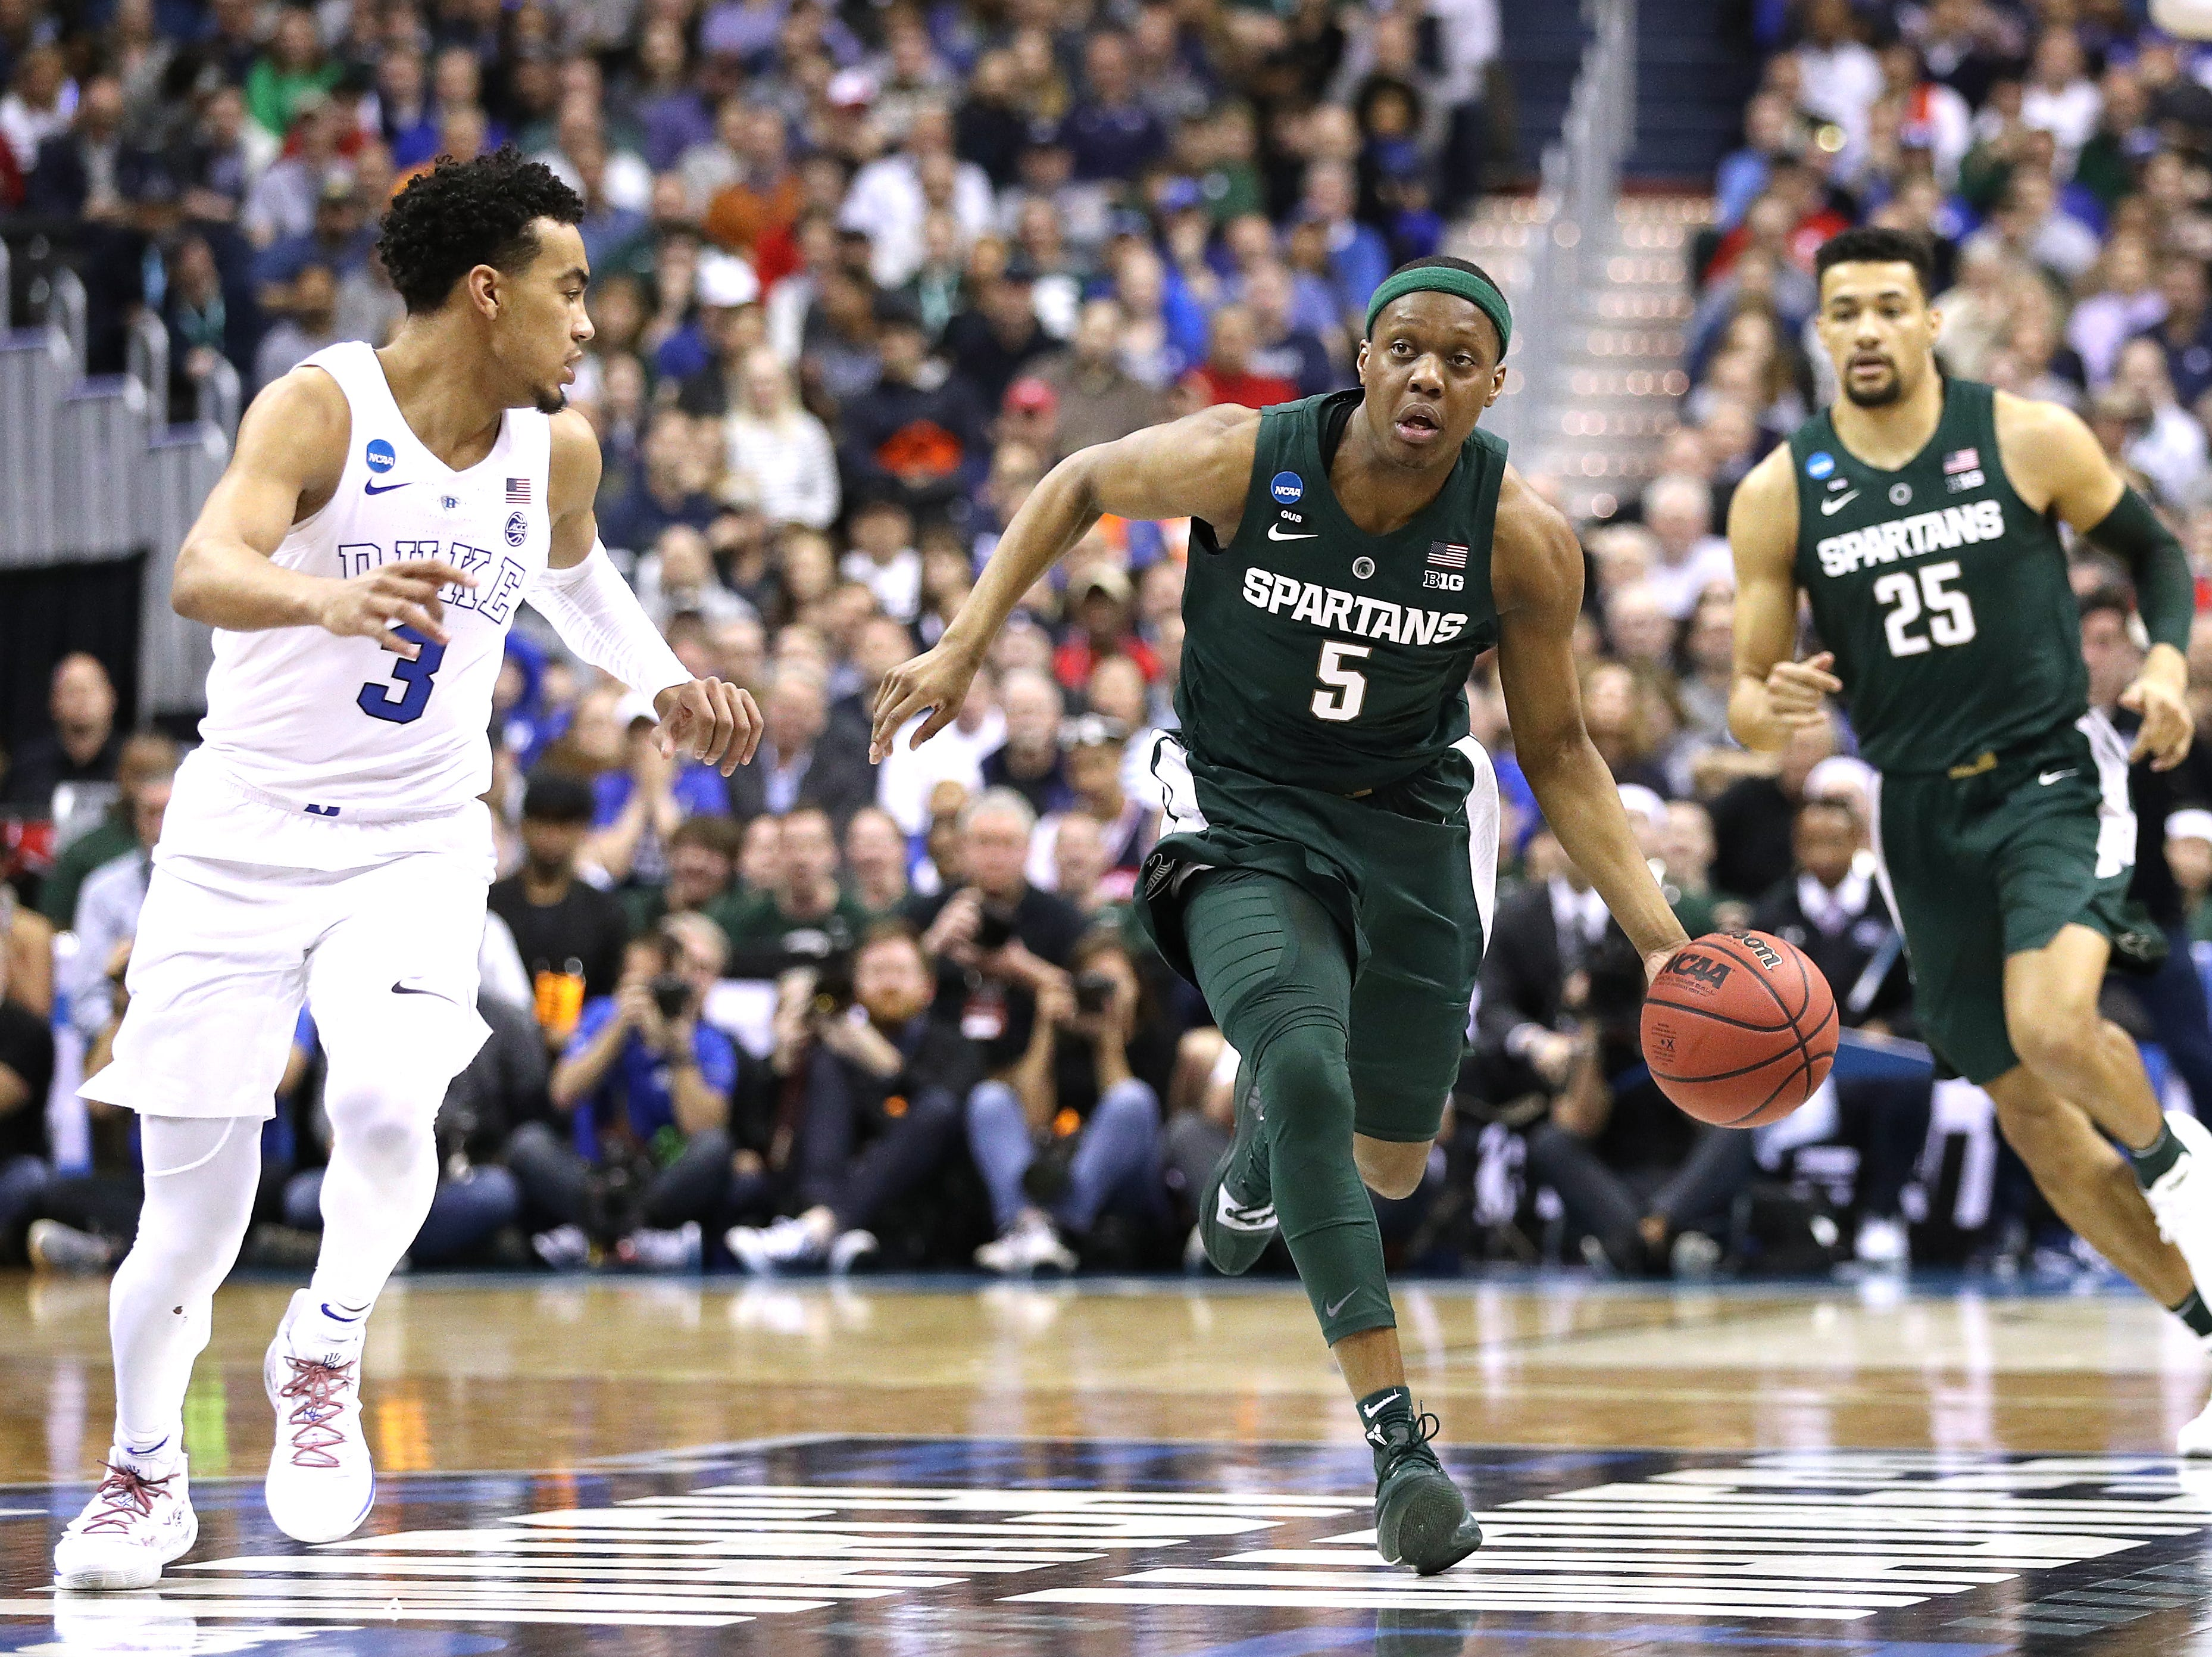 Cassius Winston #5 of the Michigan State Spartans is defended by Tre Jones #3 of the Duke Blue Devils during the first half in the East Regional game of the 2019 NCAA Men's Basketball Tournament at Capital One Arena on March 31, 2019 in Washington, DC.